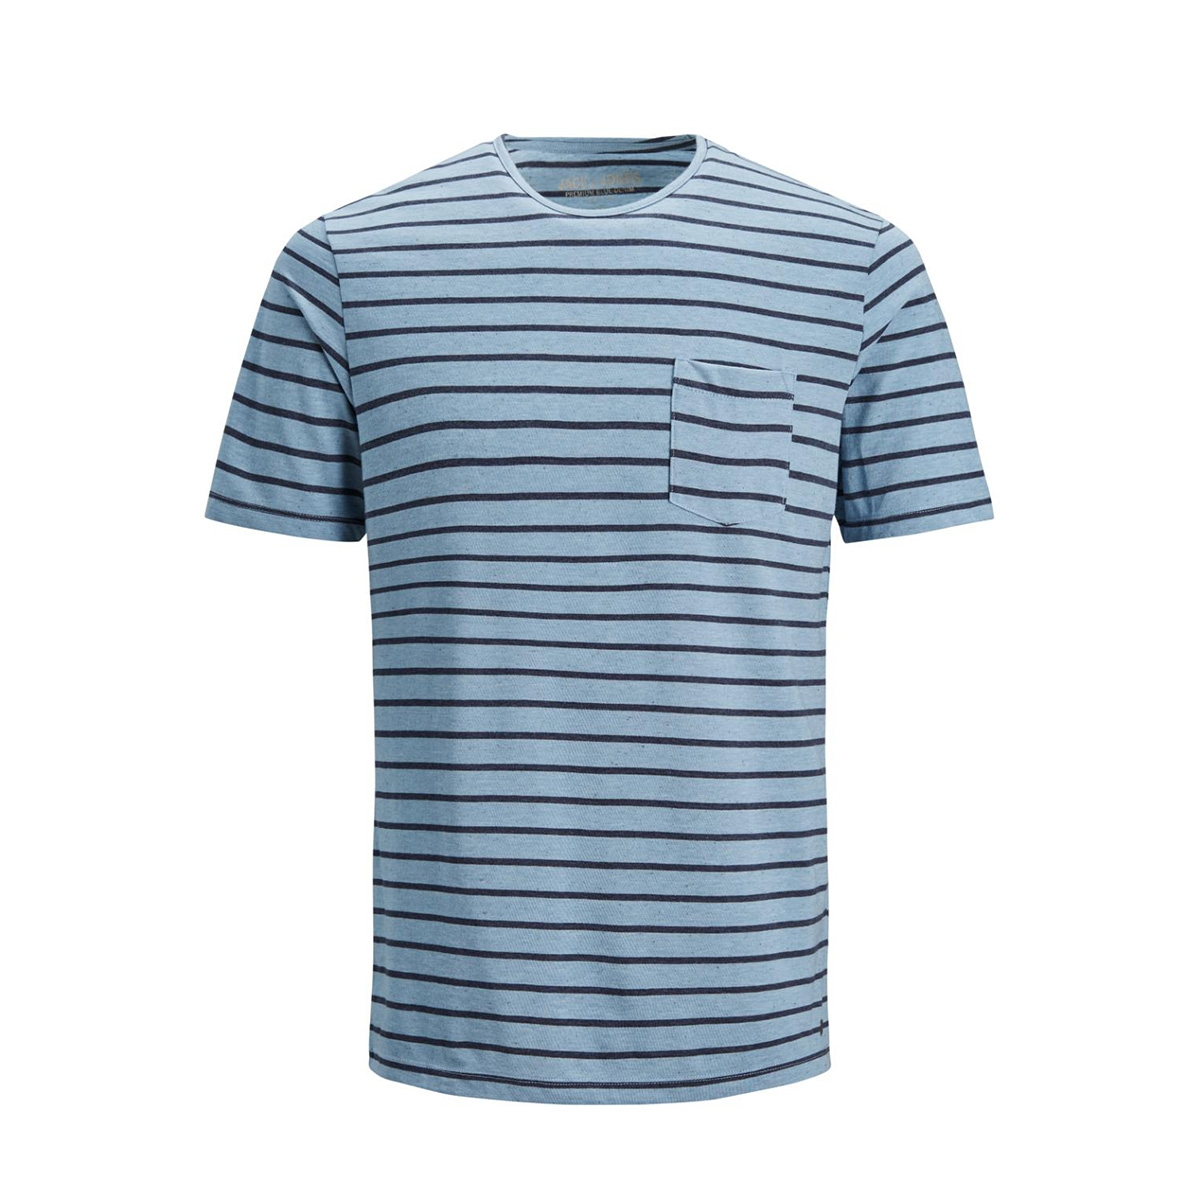 jprocean stripe tee ss crew neck 12136479 jack & jones t-shirt faded denim